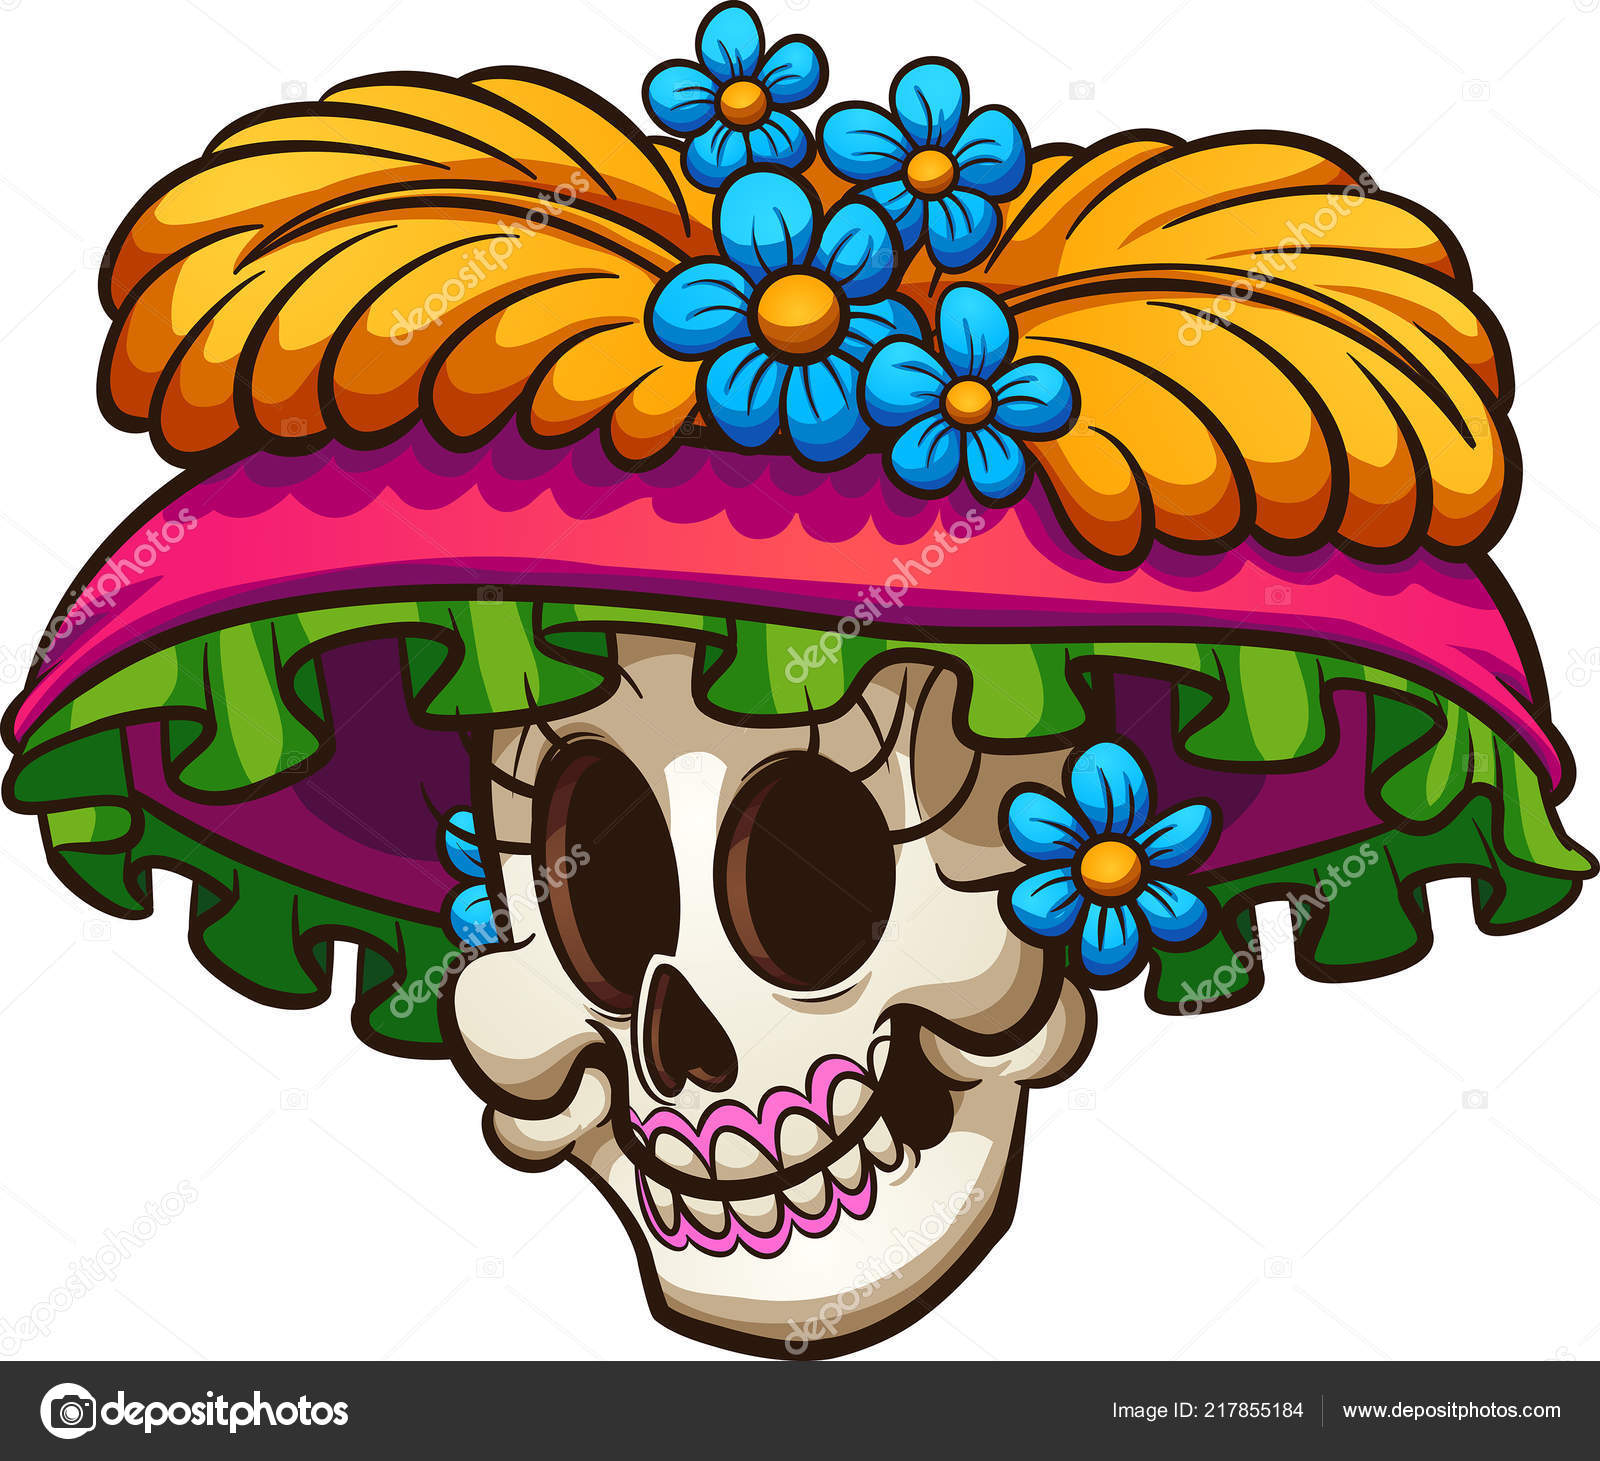 Clipart: day of the dead.